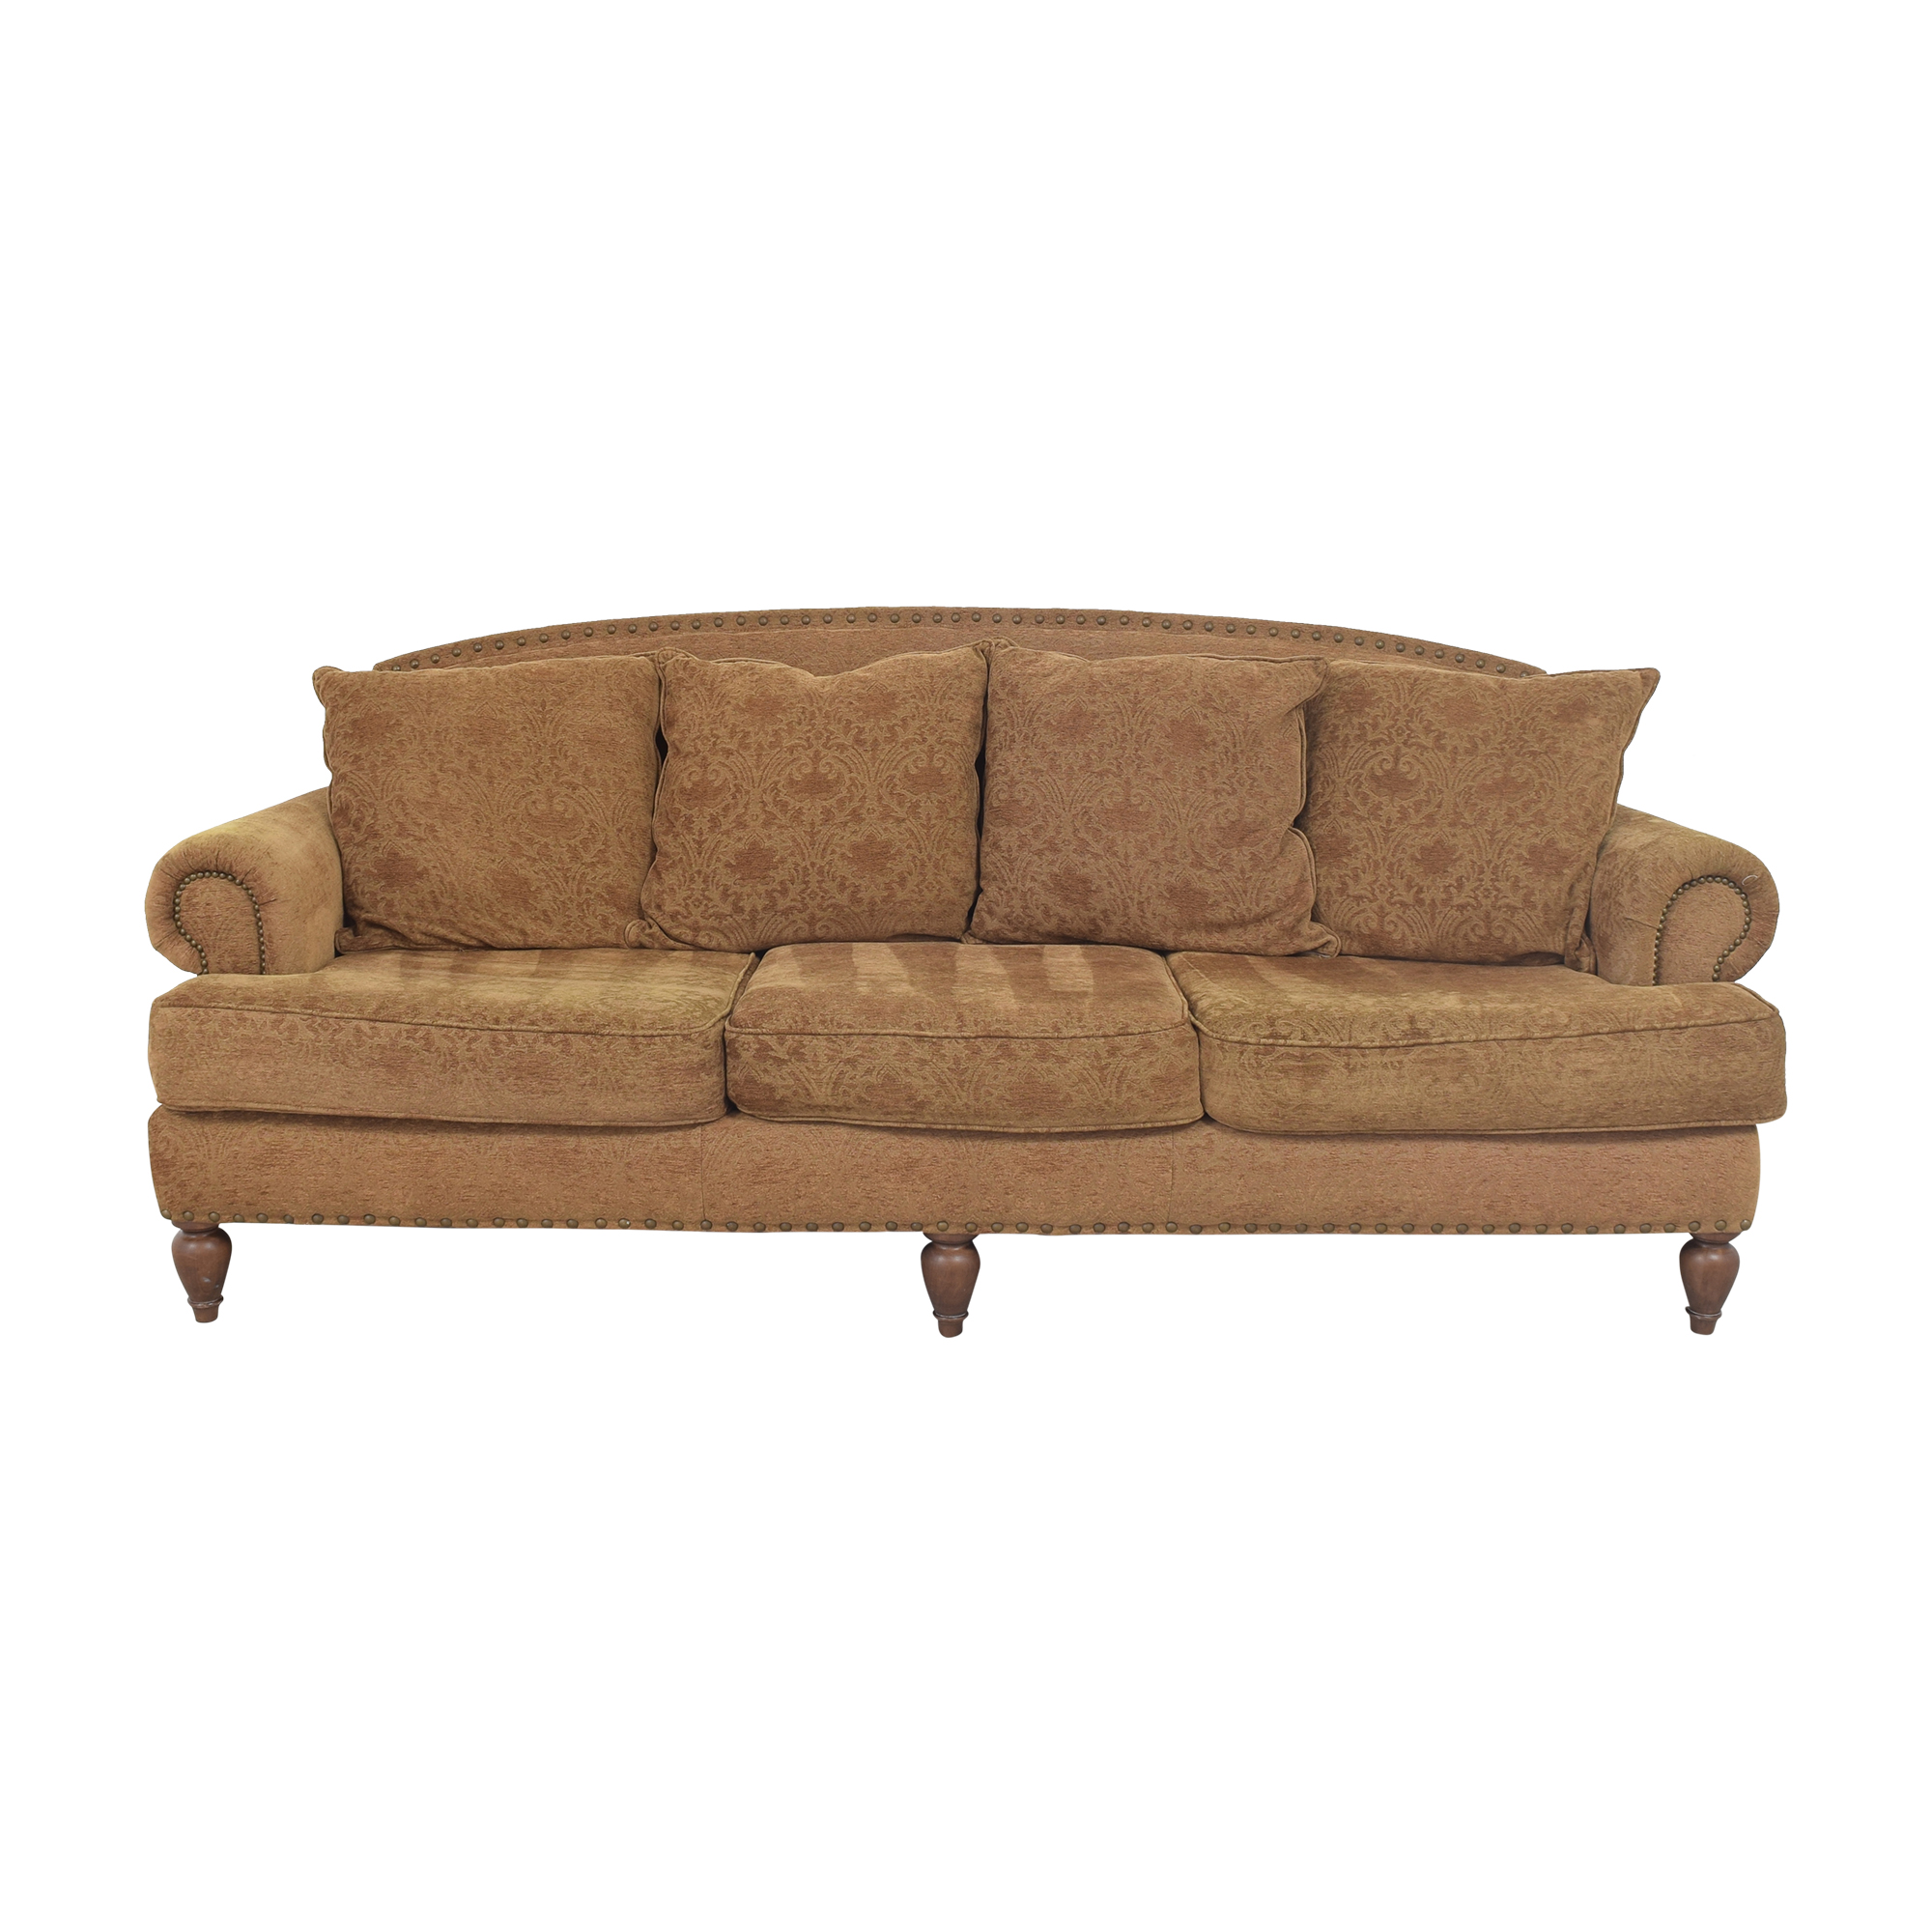 Bernhardt Three Cushion Roll Arm Sofa / Classic Sofas